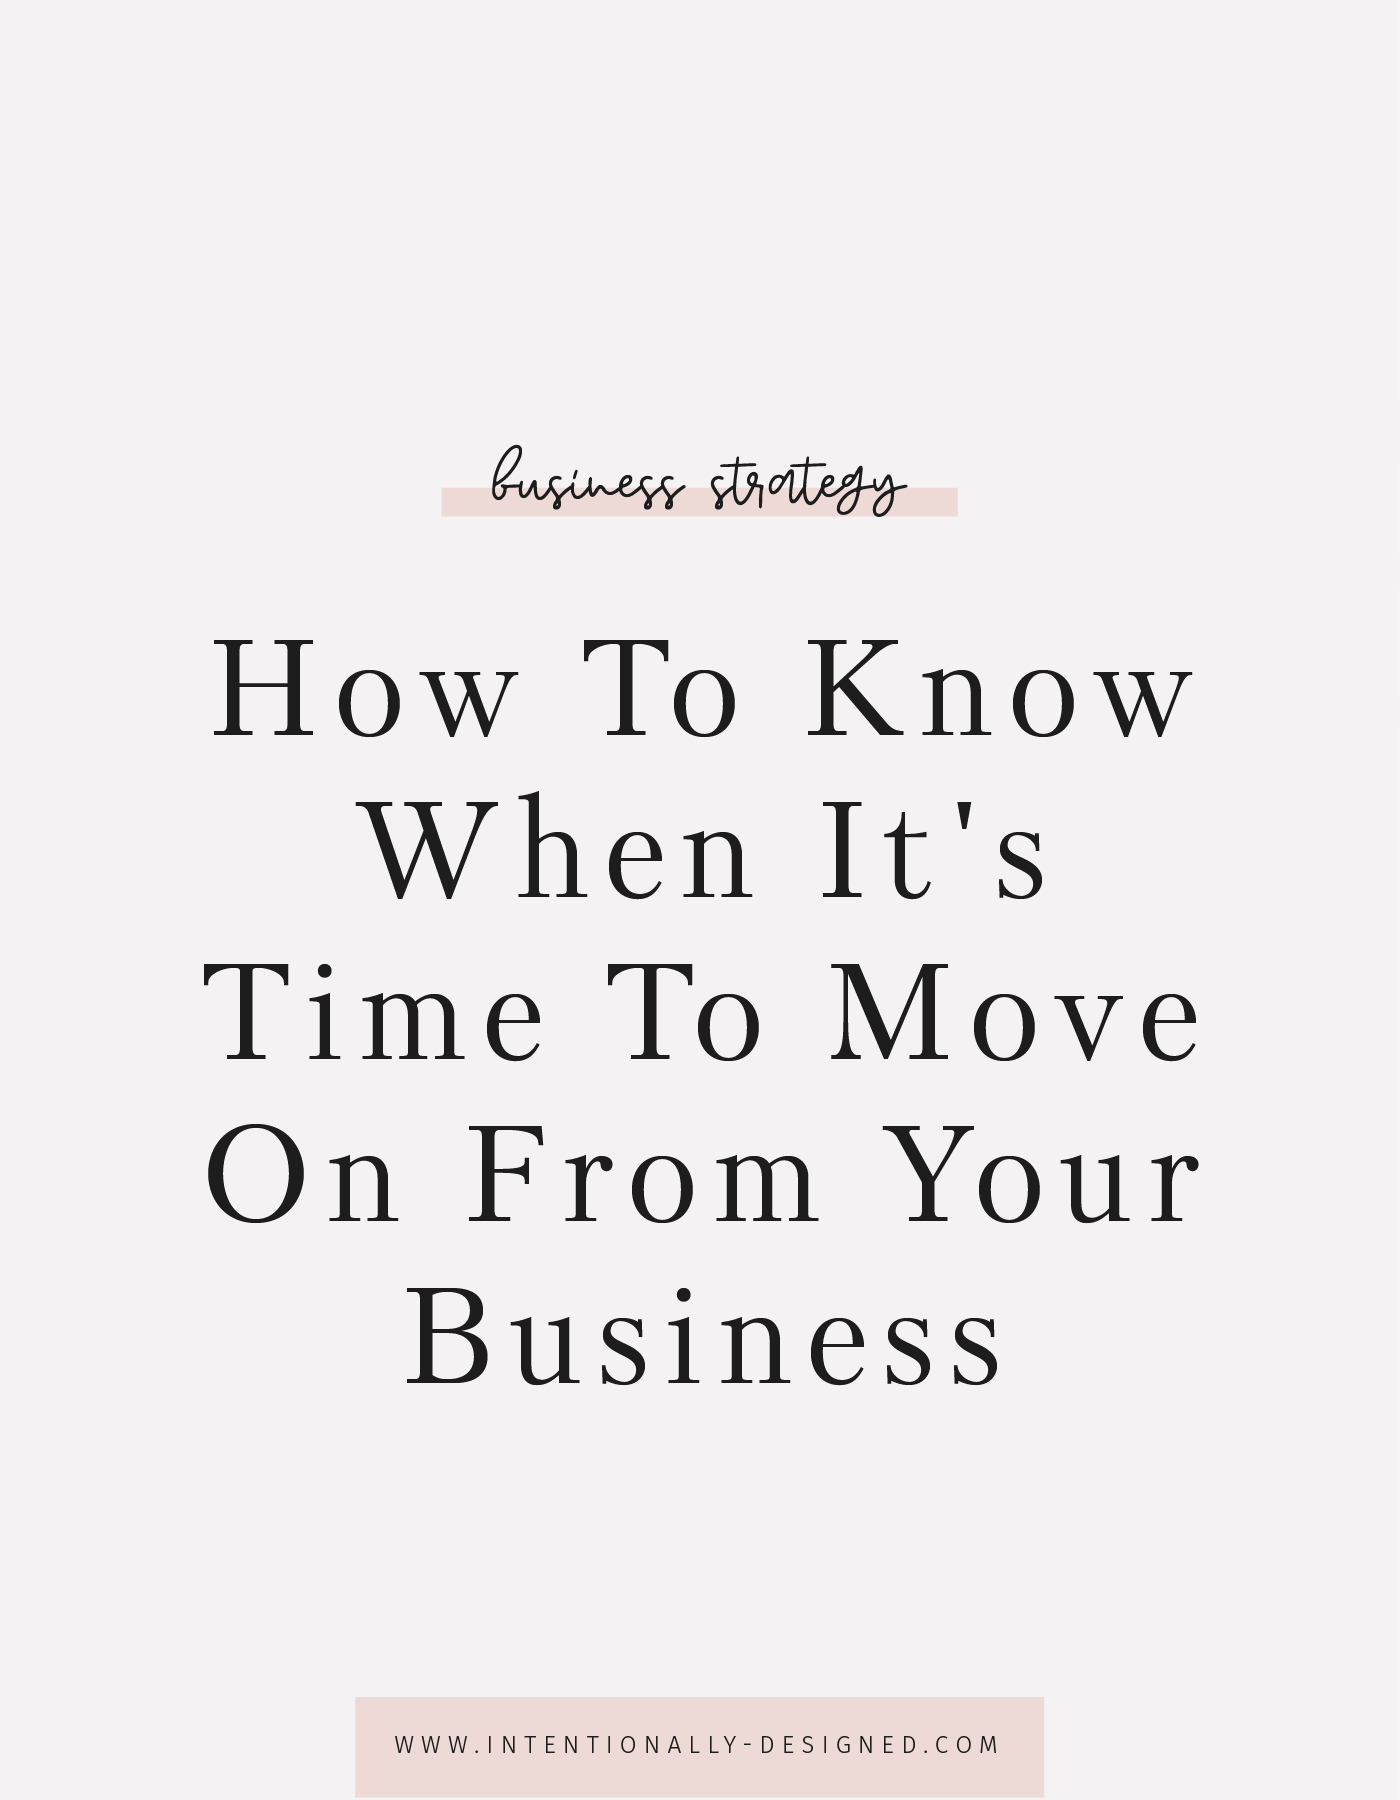 How To Know When It's Time To Move On From Your Business